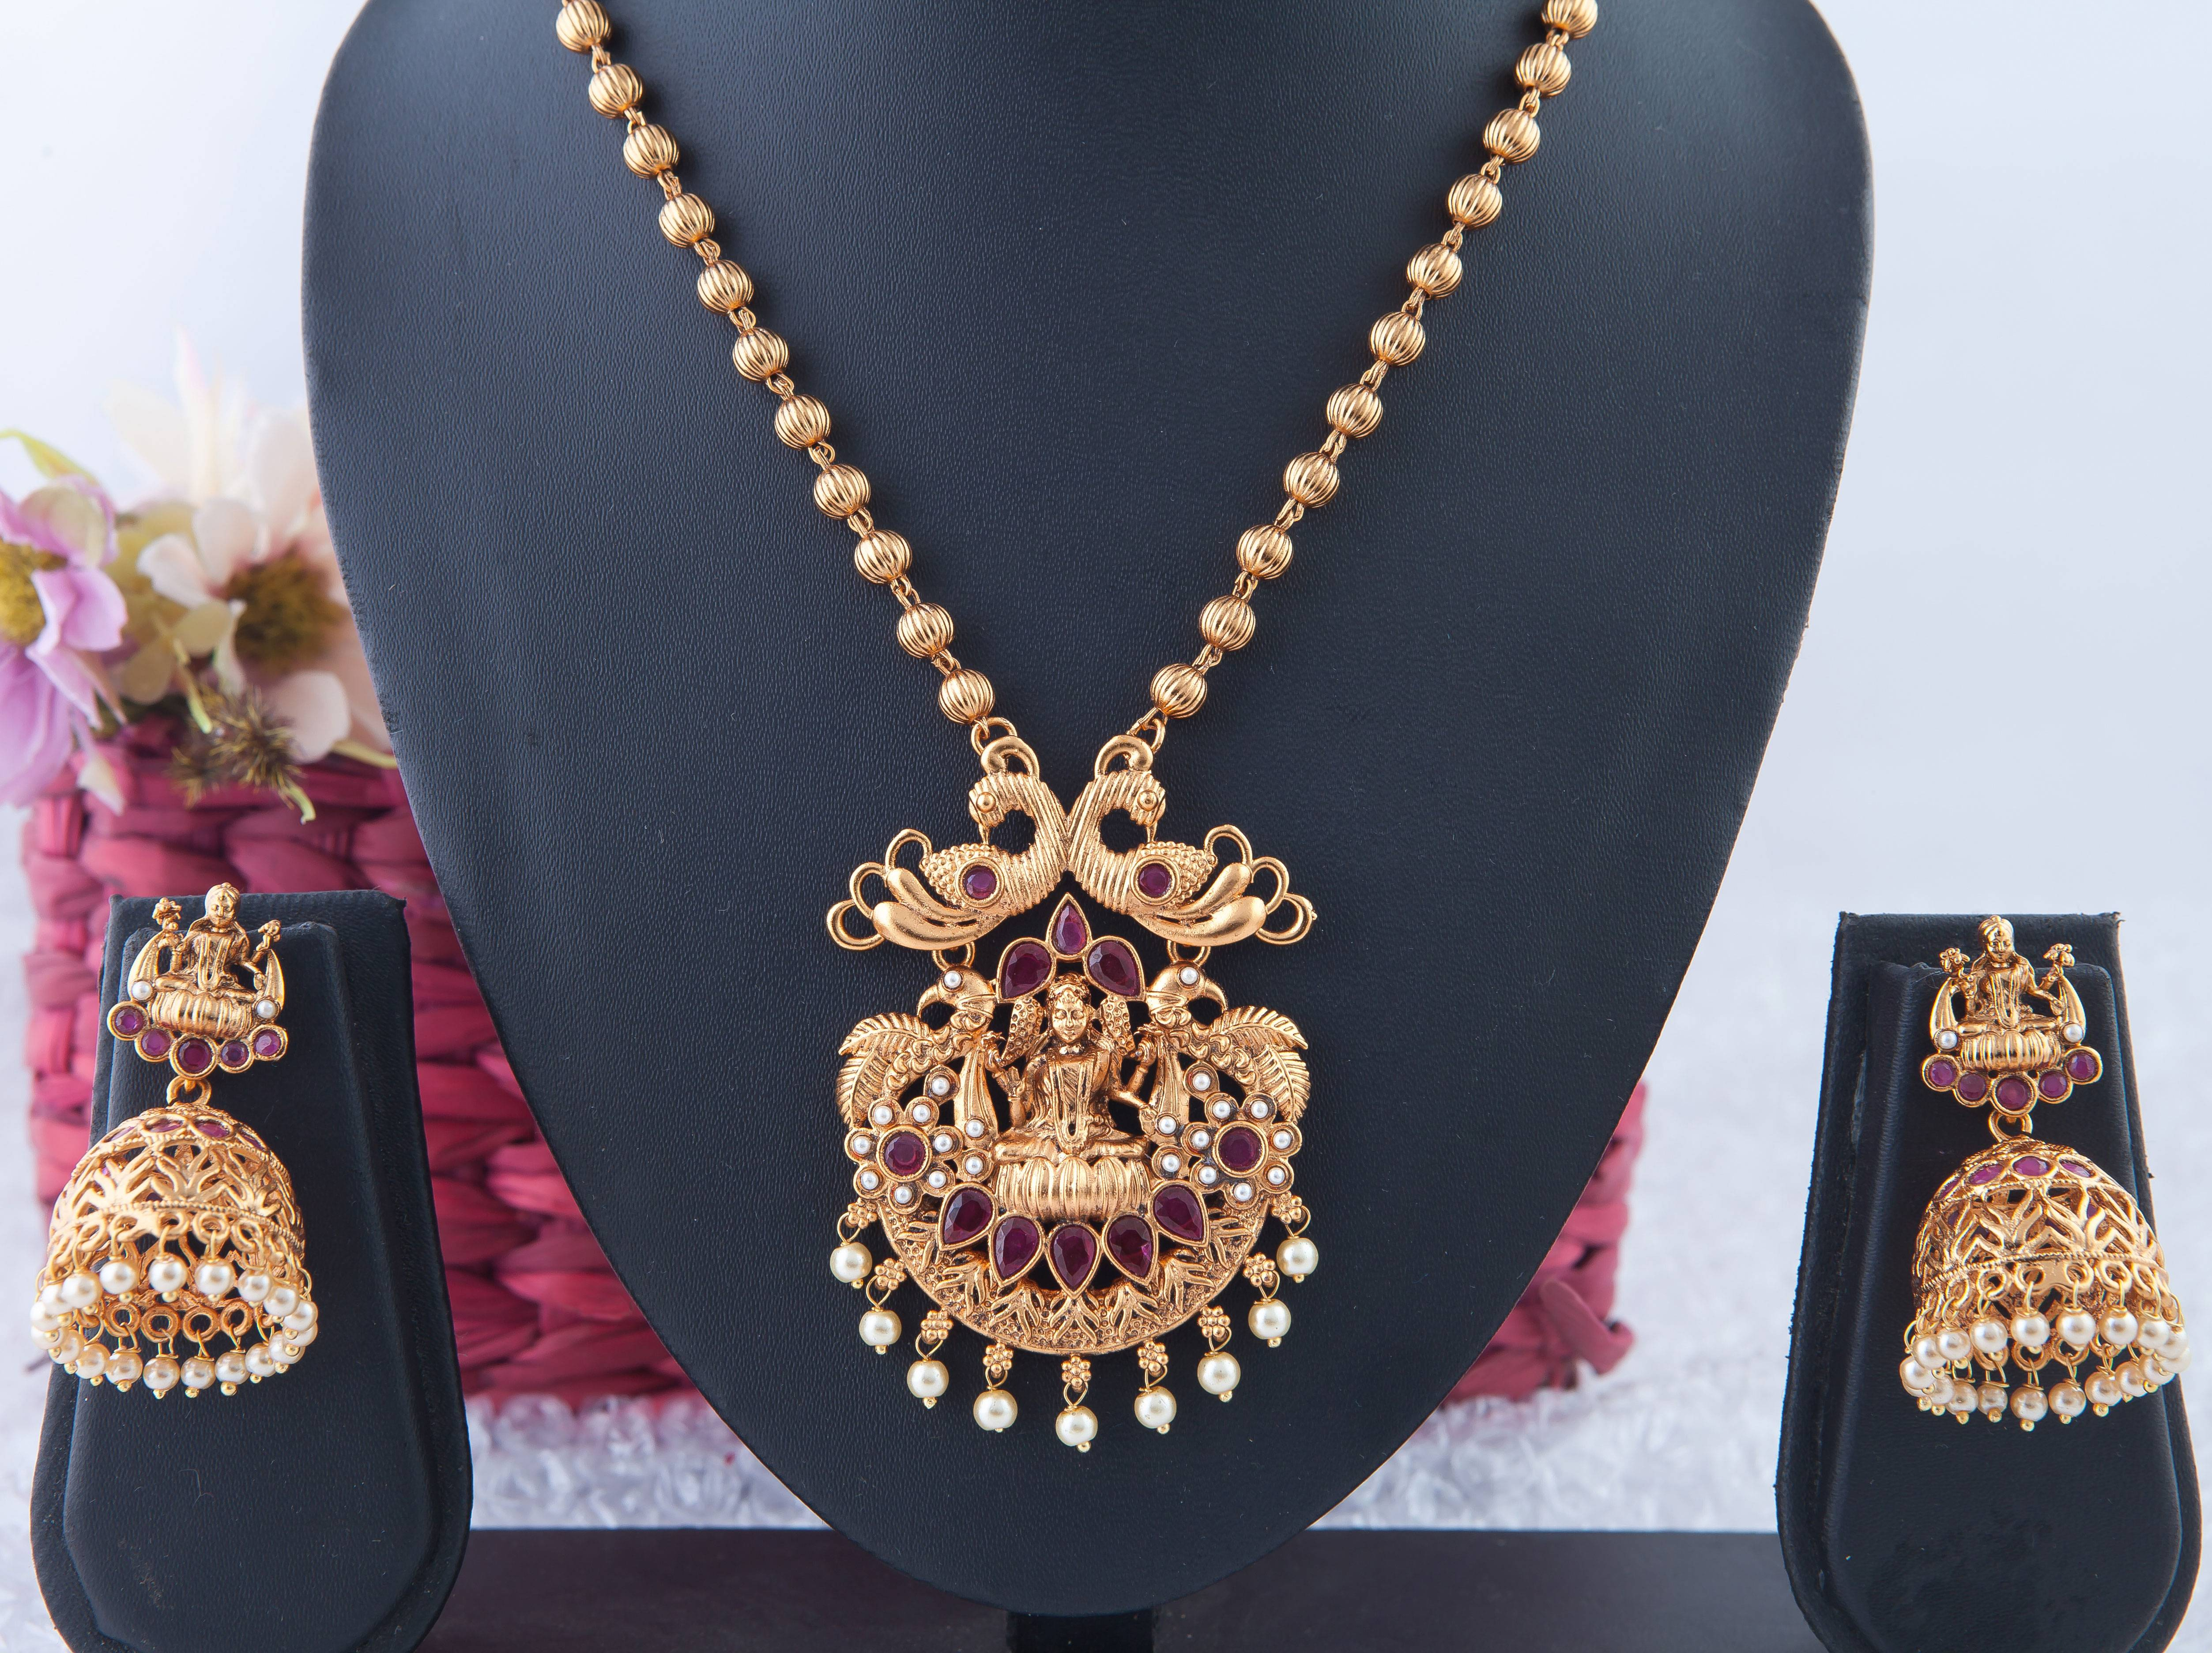 CHETTINAD NECKLACE NKCH - 28 - 056082011